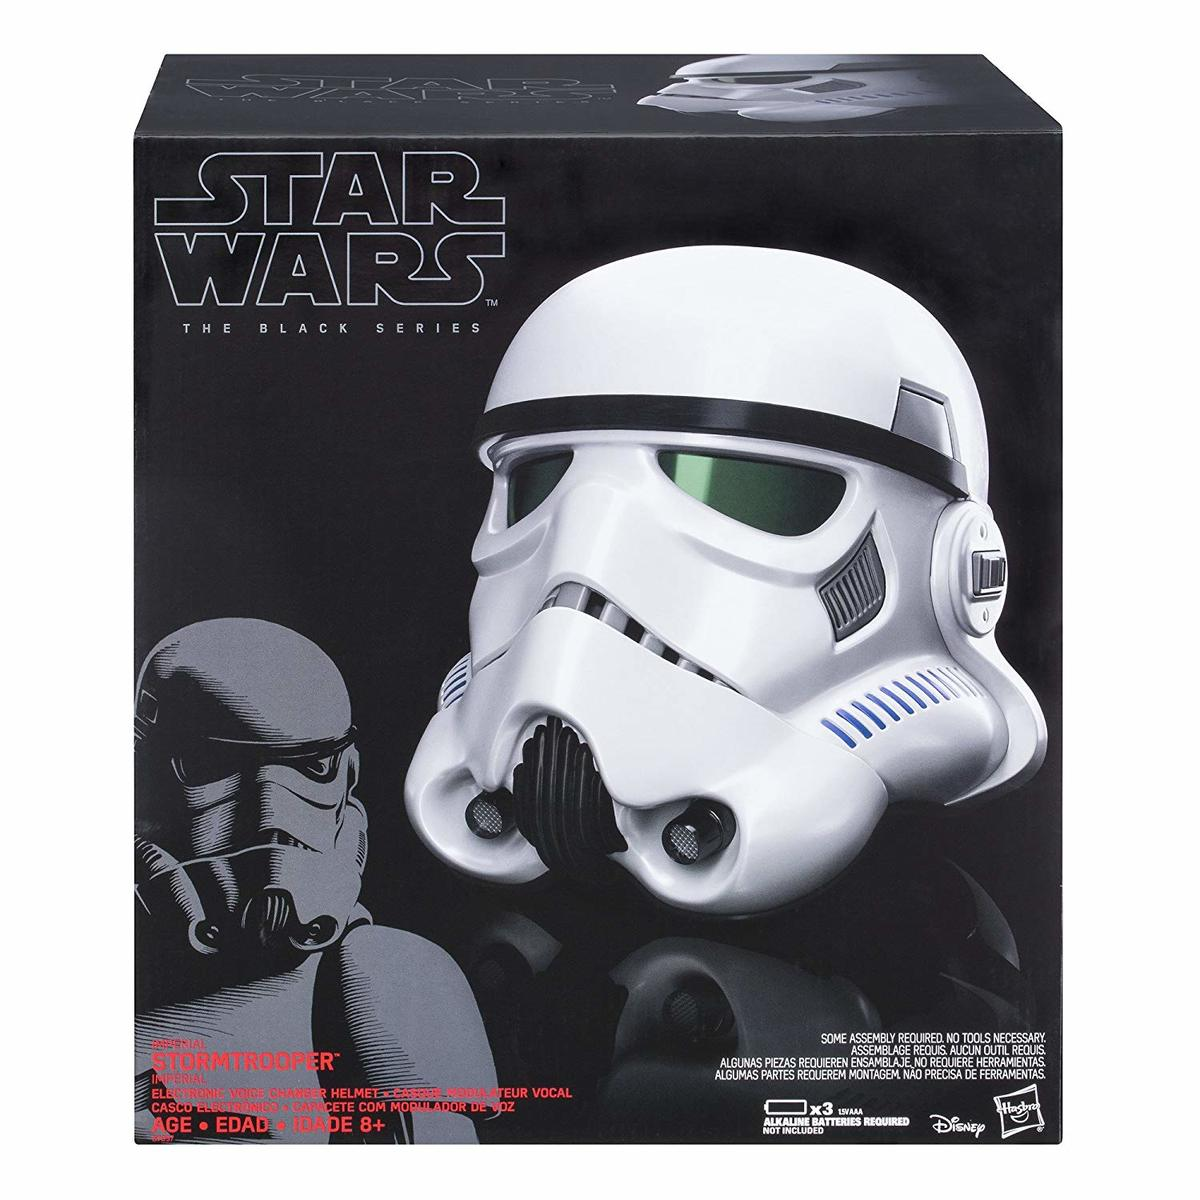 Star Wars The Black Series Imperial Stormtrooper Electronic Voice Changer Helmet並行輸入品